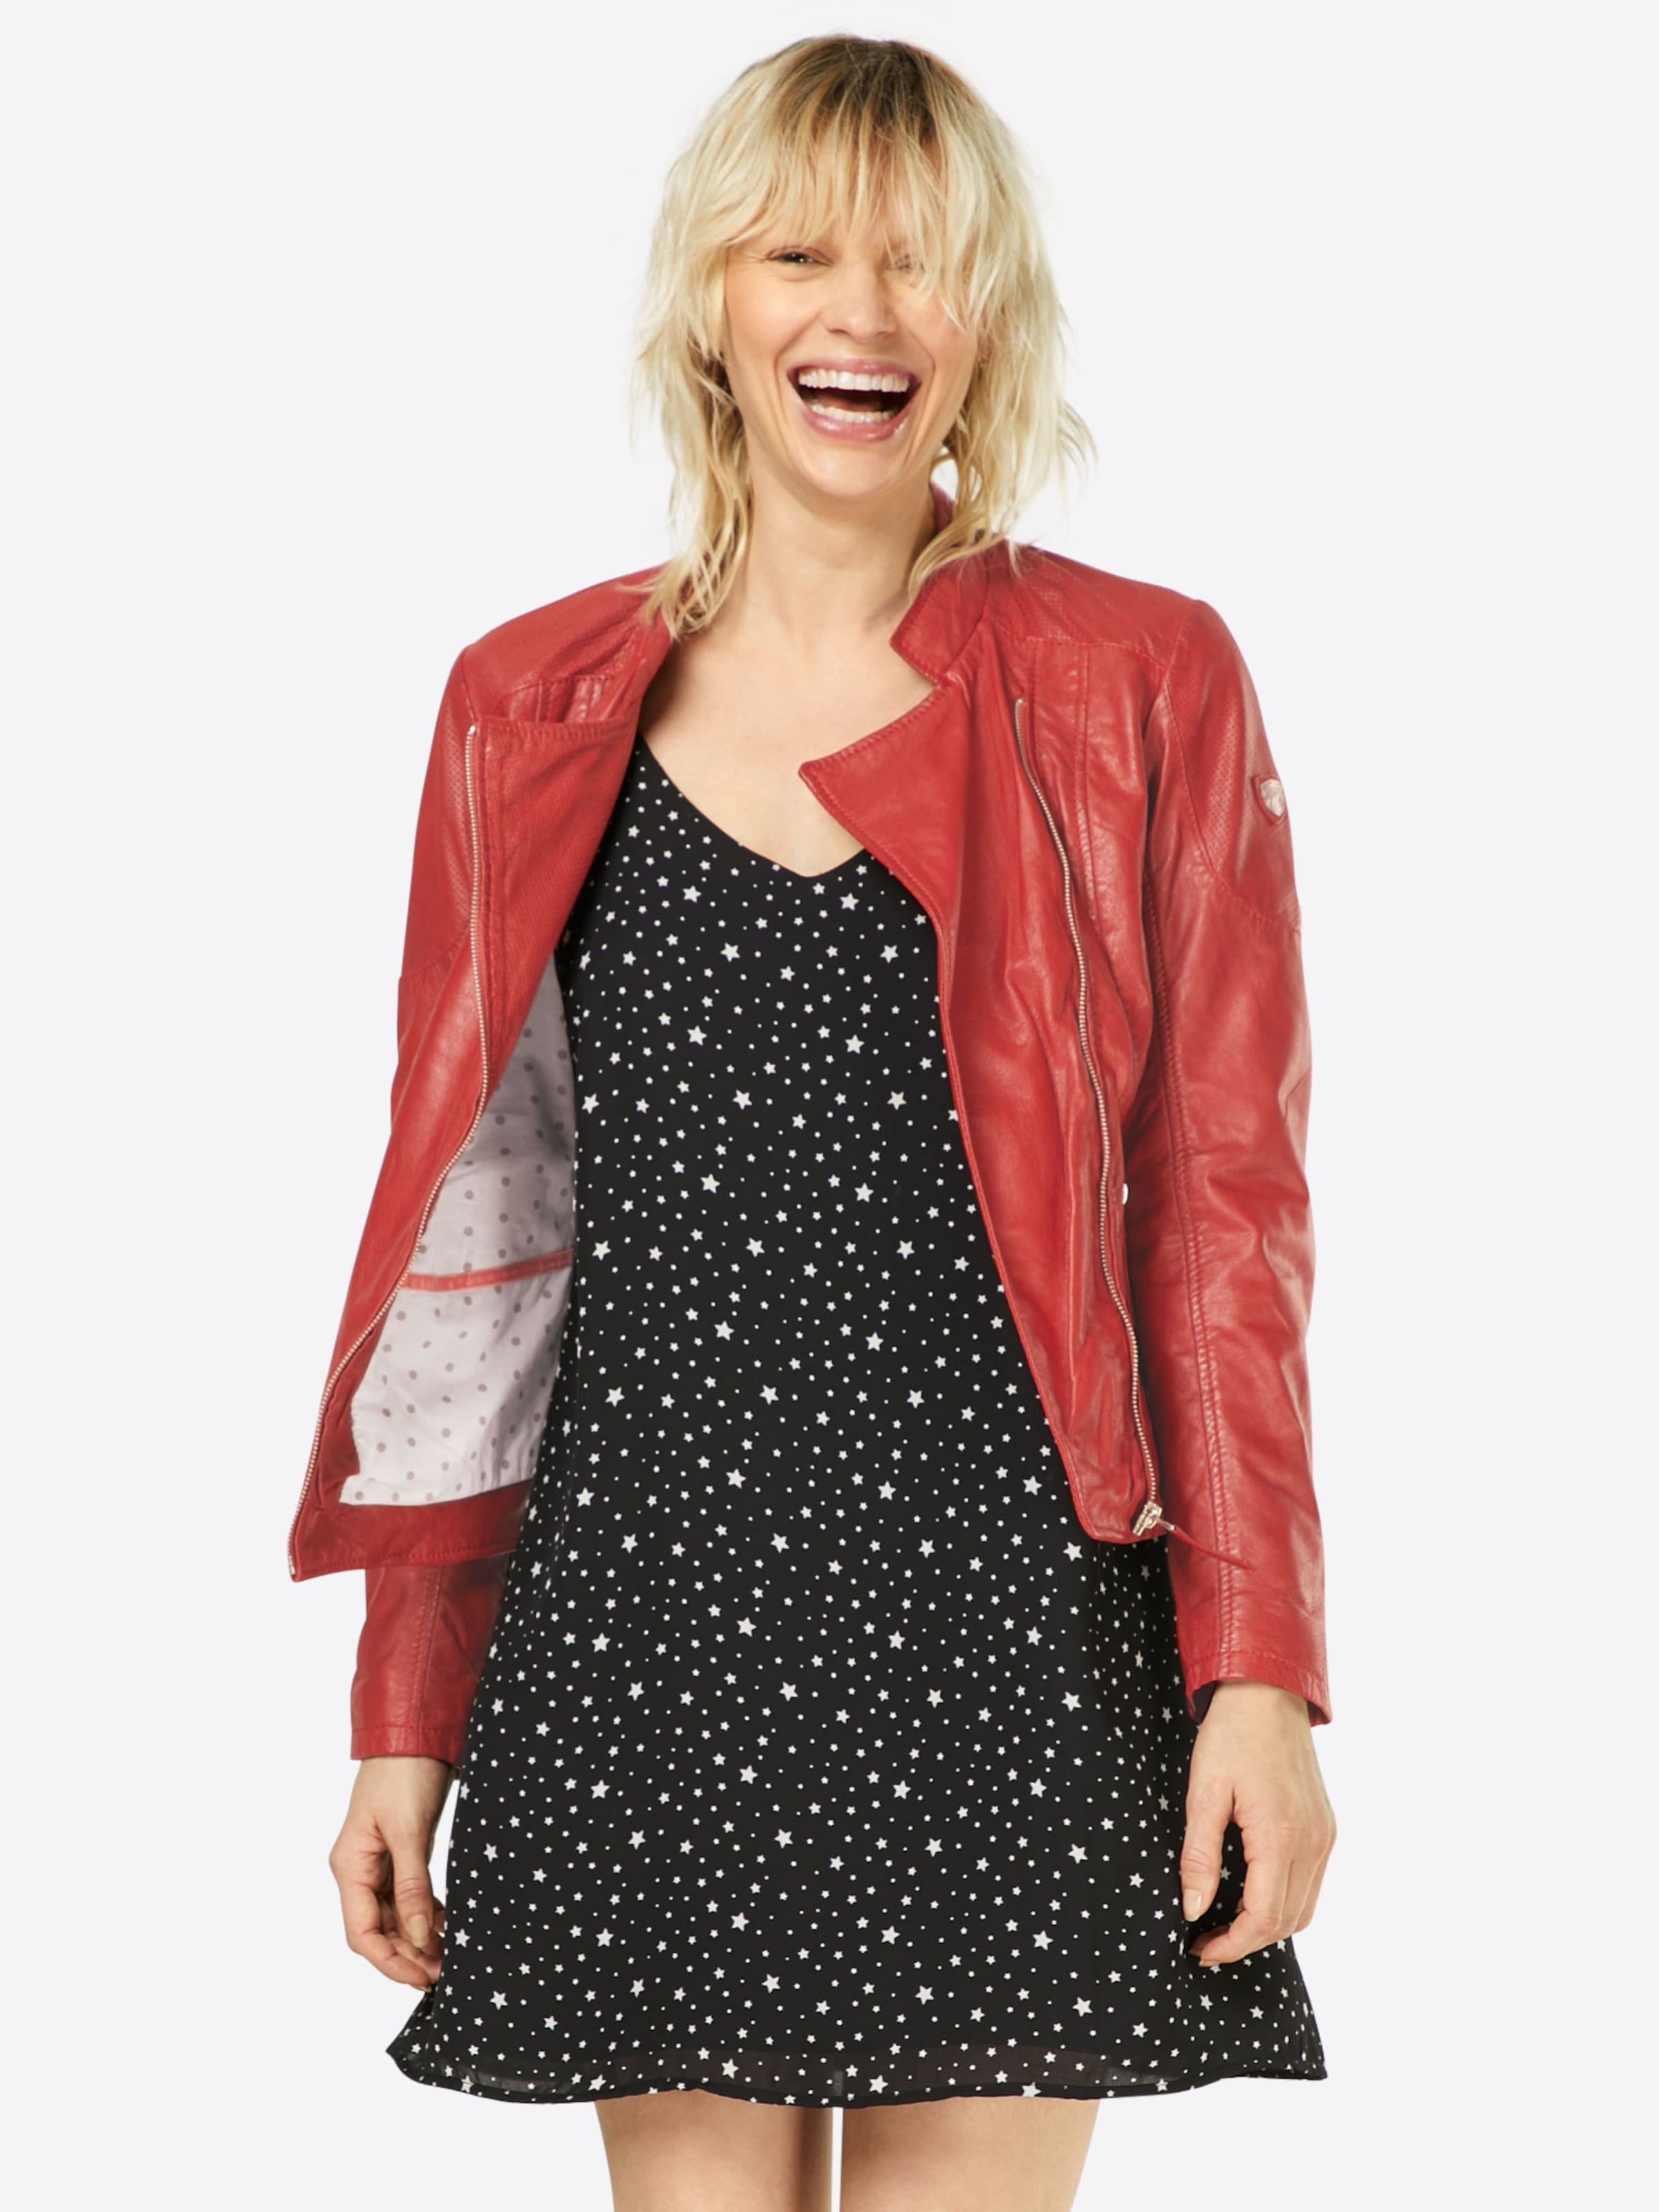 Gipsy Lederjacke 'Sugar LASV' Outlet Angebote iE5ib